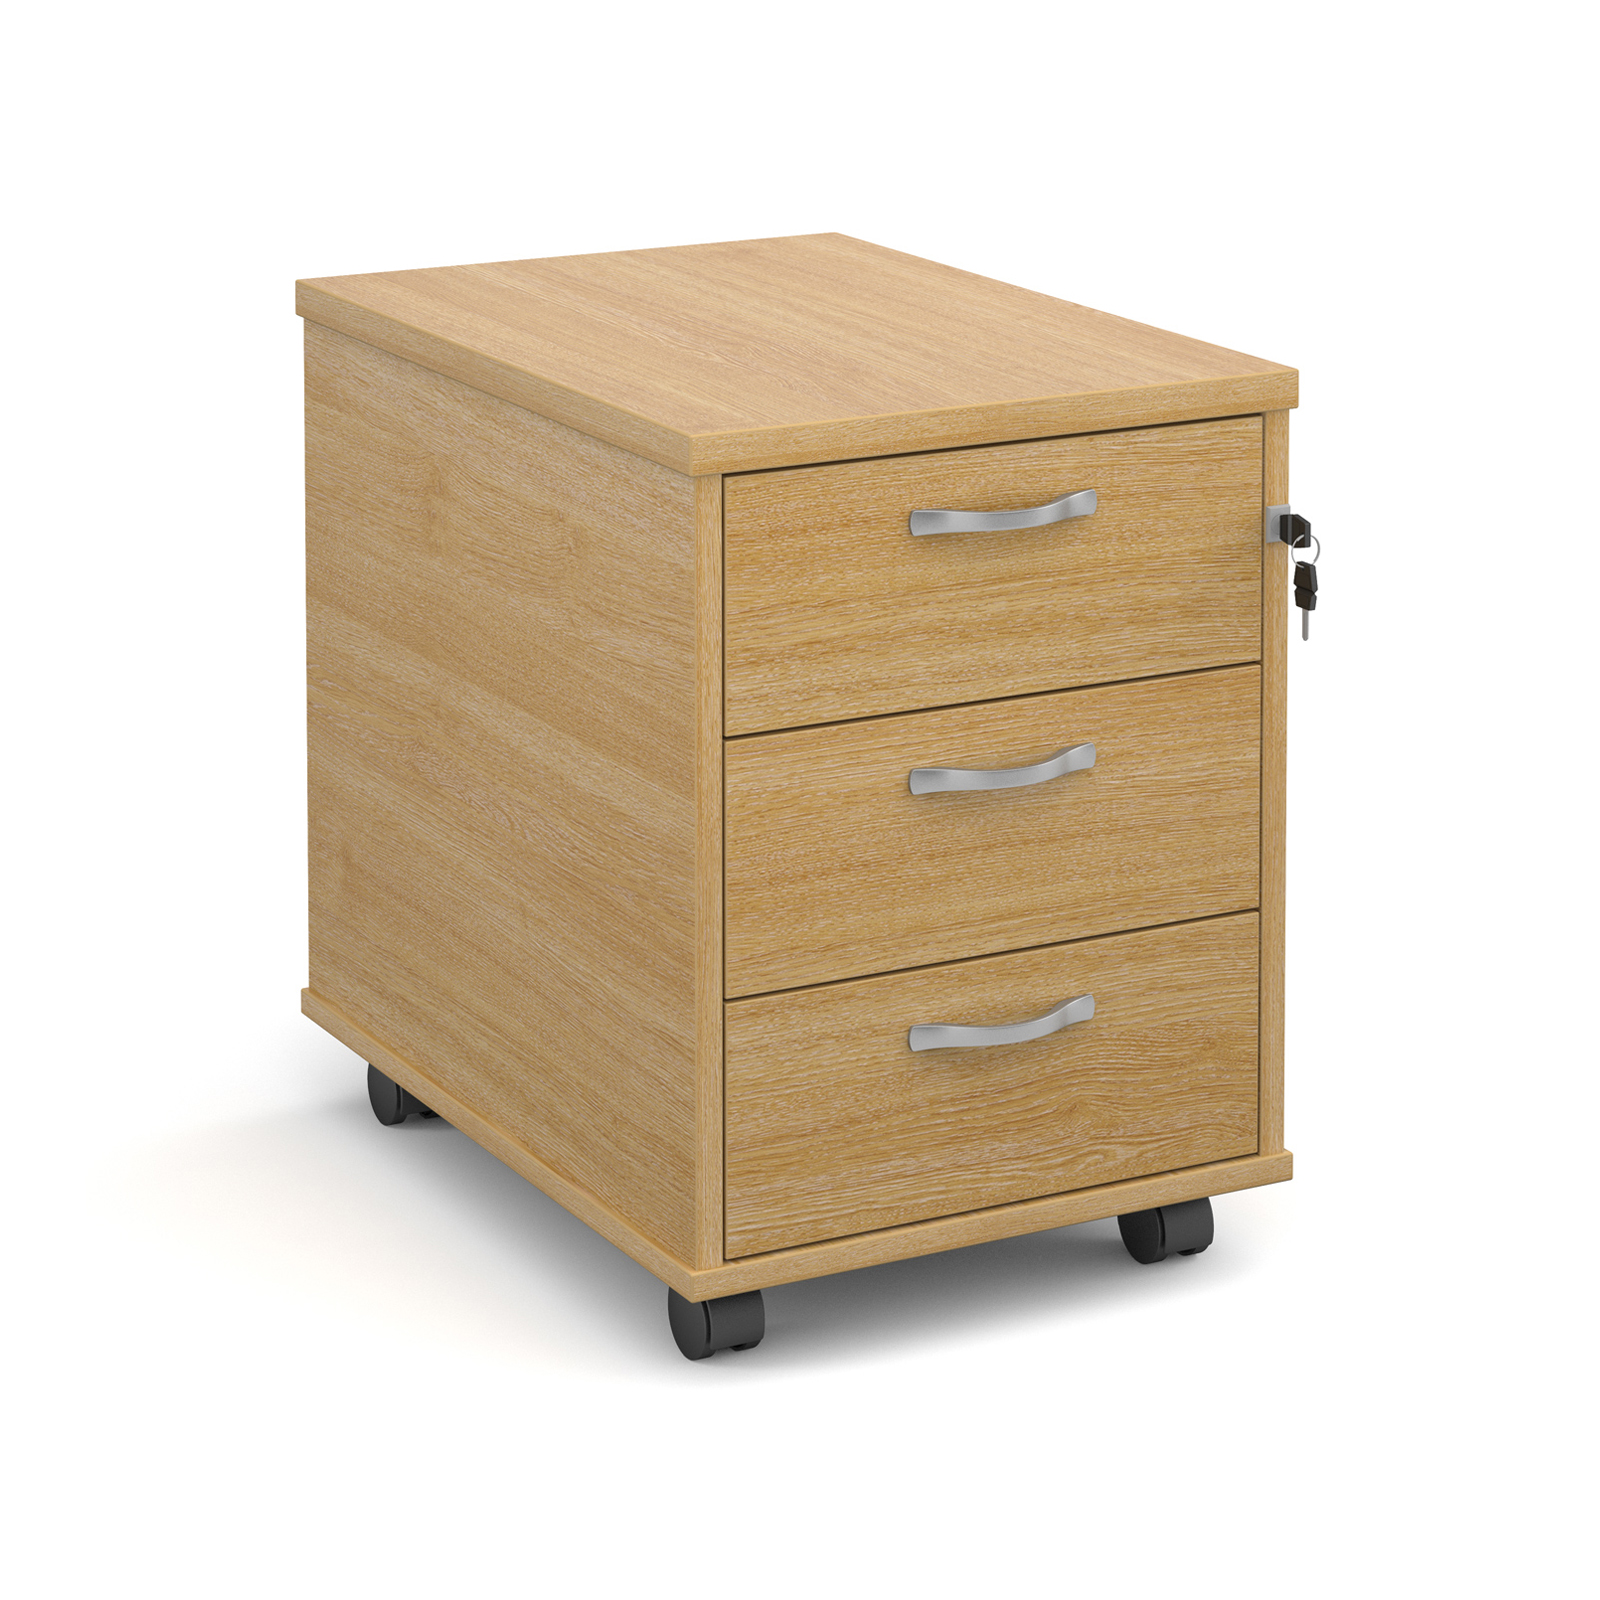 Mobile 3 drawer pedestal with silver handles 600mm deep - oak